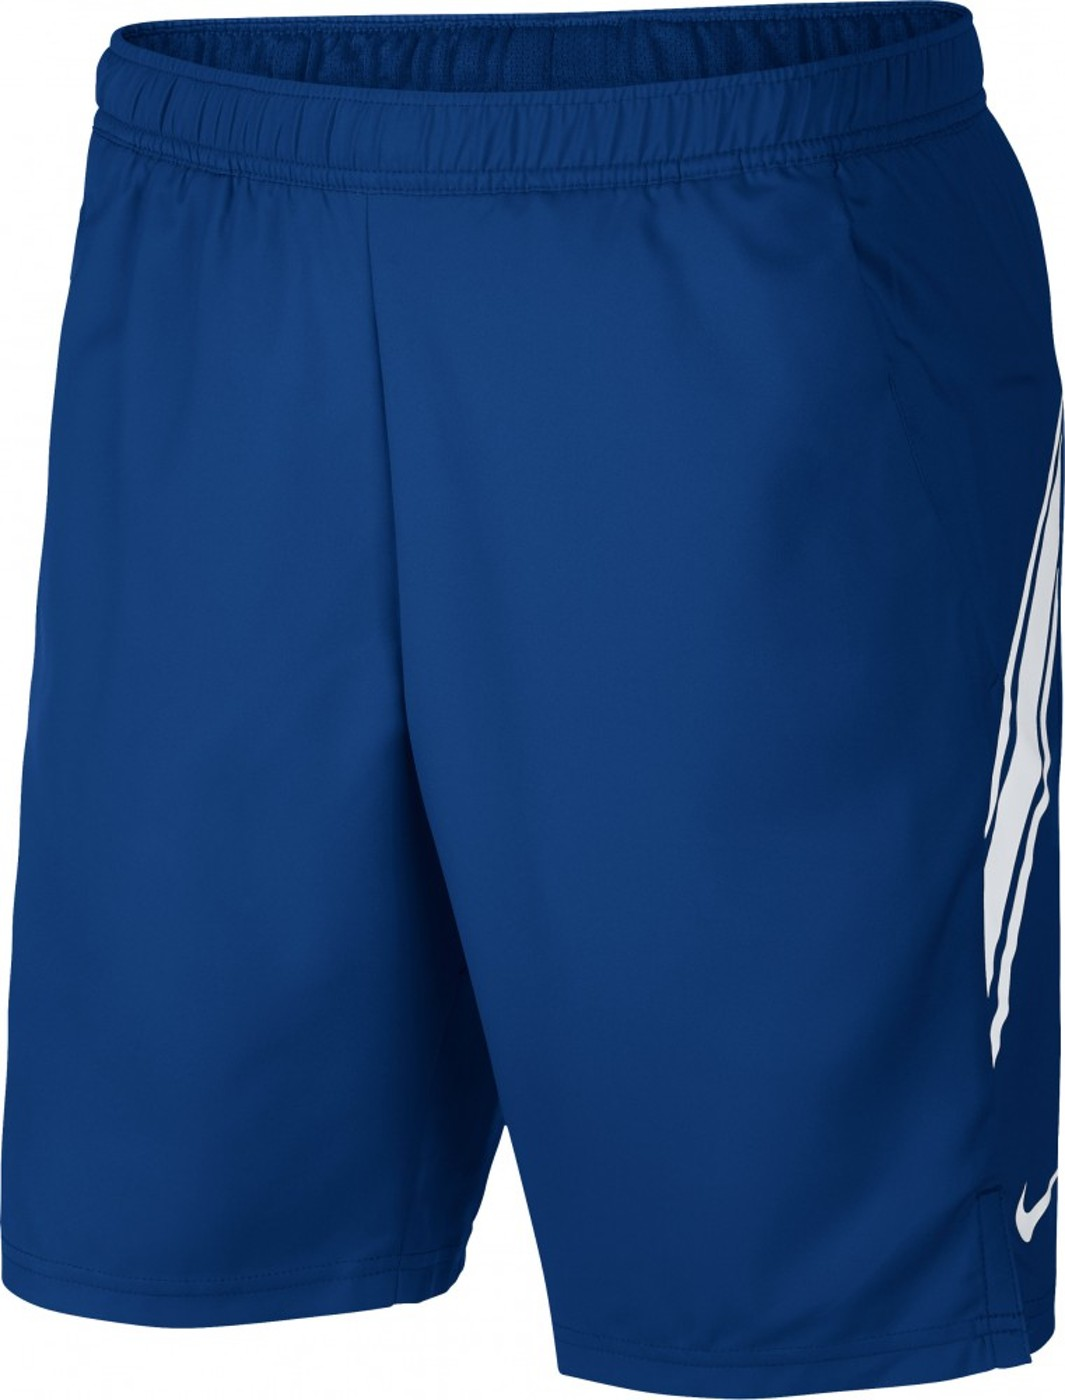 "NikeCourt Dri-FIT 9"" Ten - Herren"